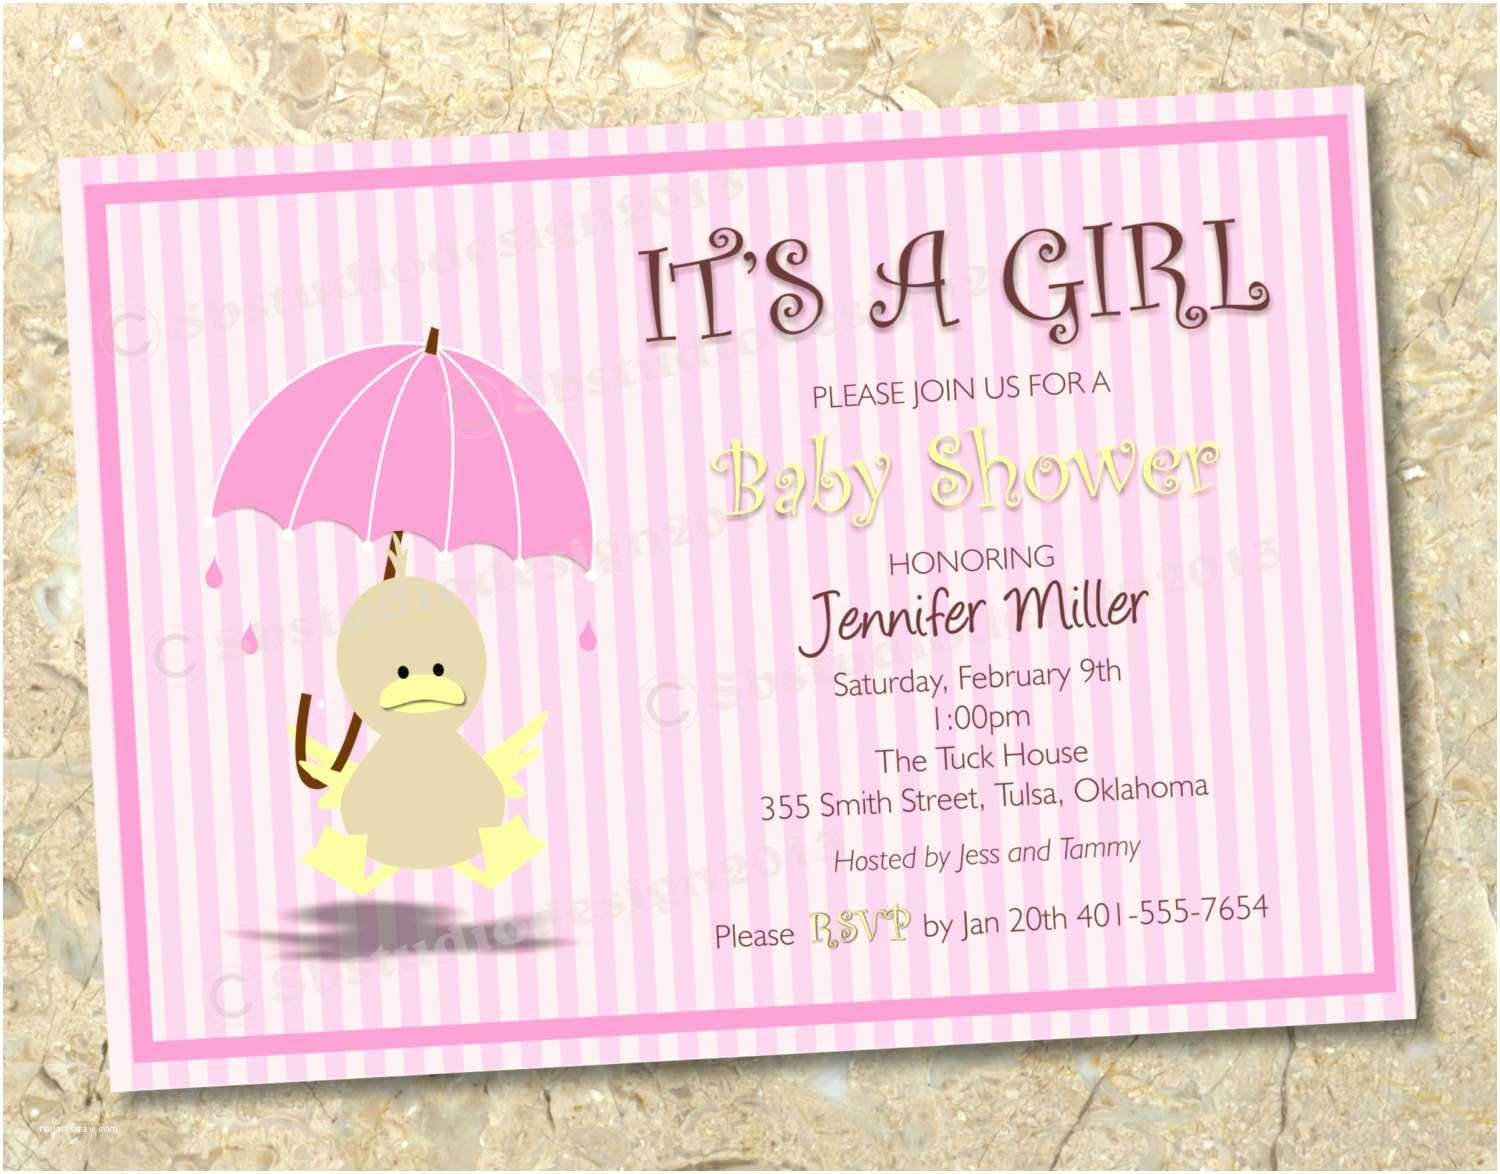 Free Baby Shower Invitation Free Printable Template For Baby Shower